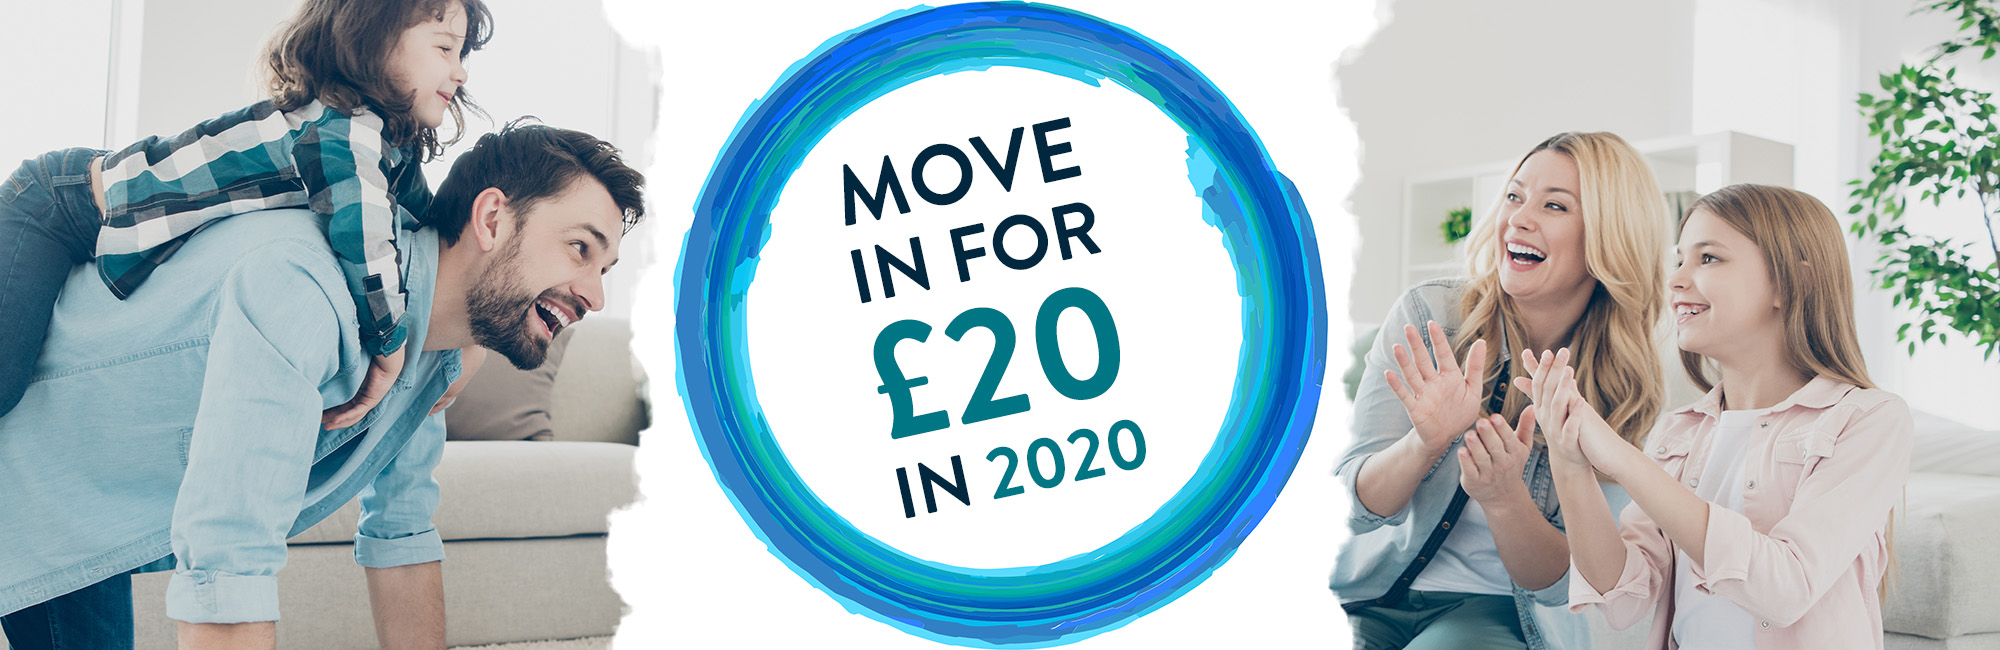 Move in for £20 in 2020